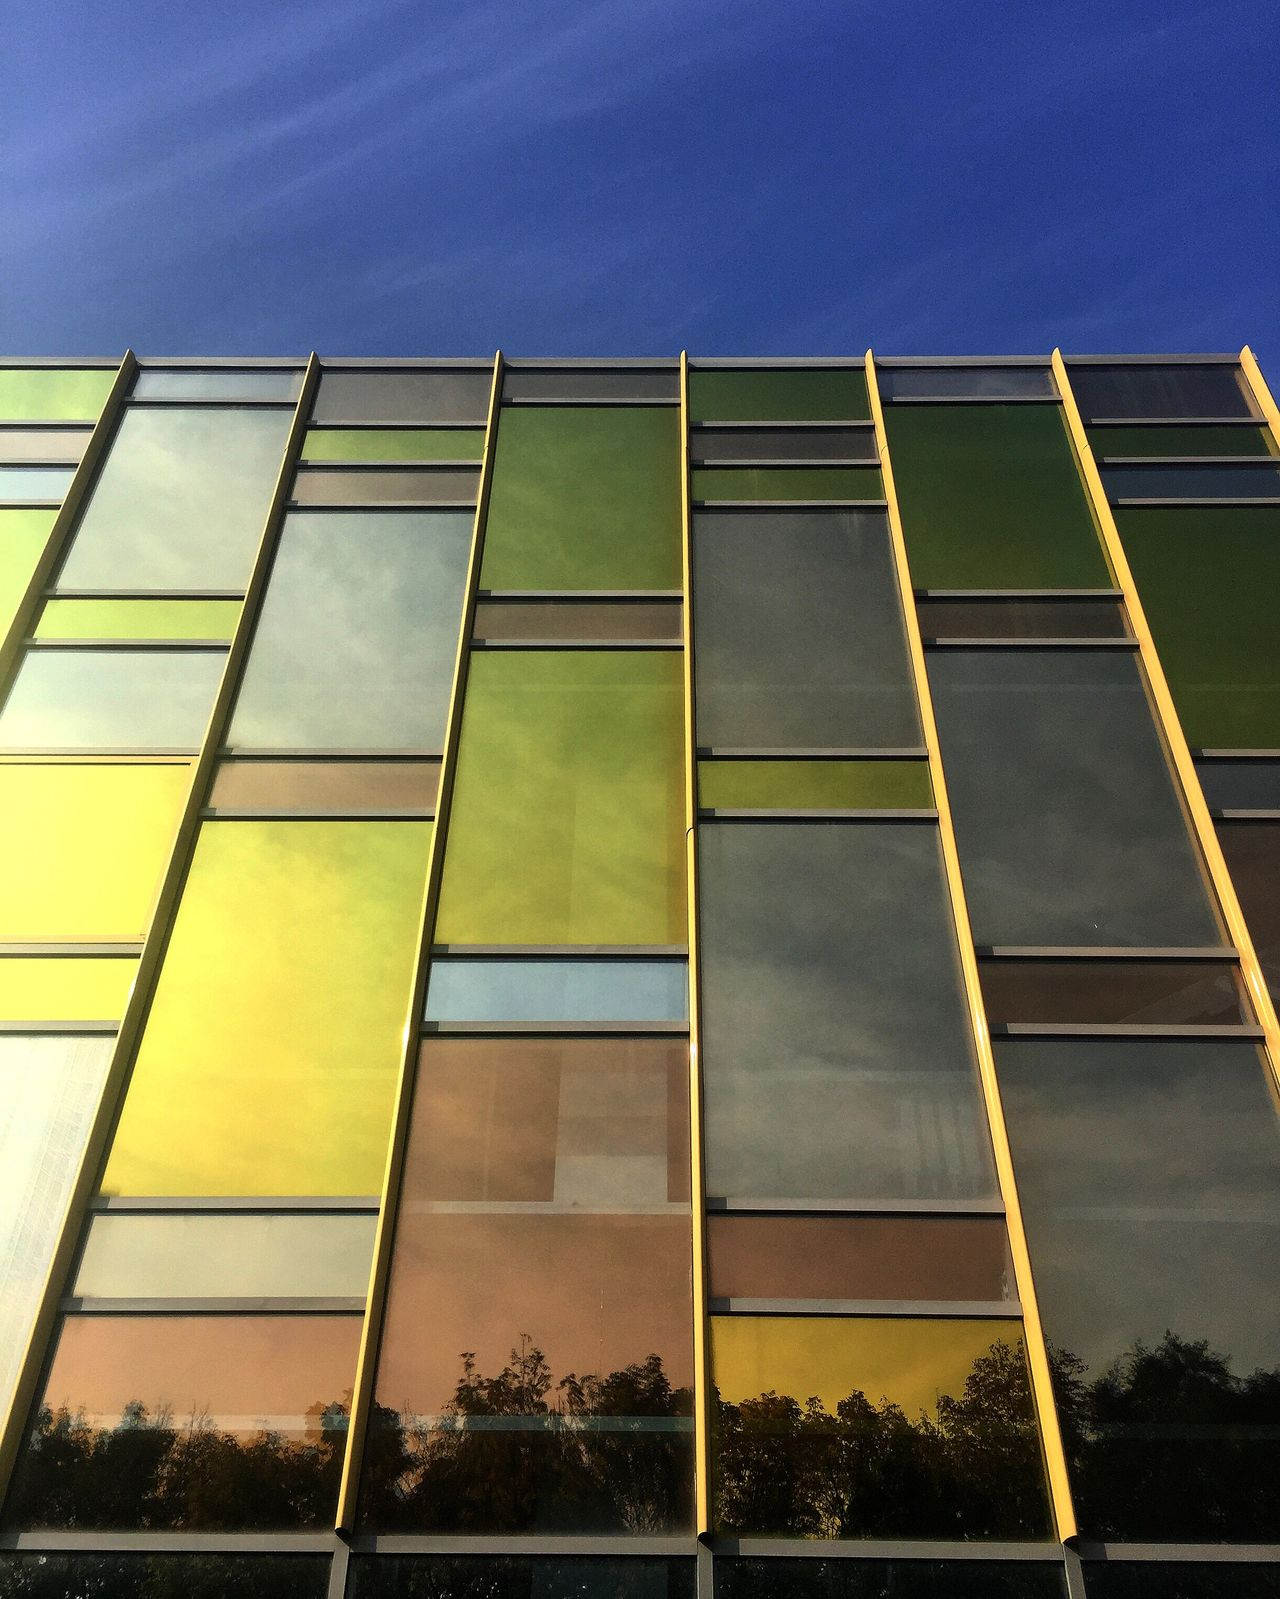 Architecture Low Angle View Built Structure Building Exterior Window Modern Geometric Shape Sky Office Building Blue Skyscraper Outdoors Building Story Full Frame Multi Colored No People